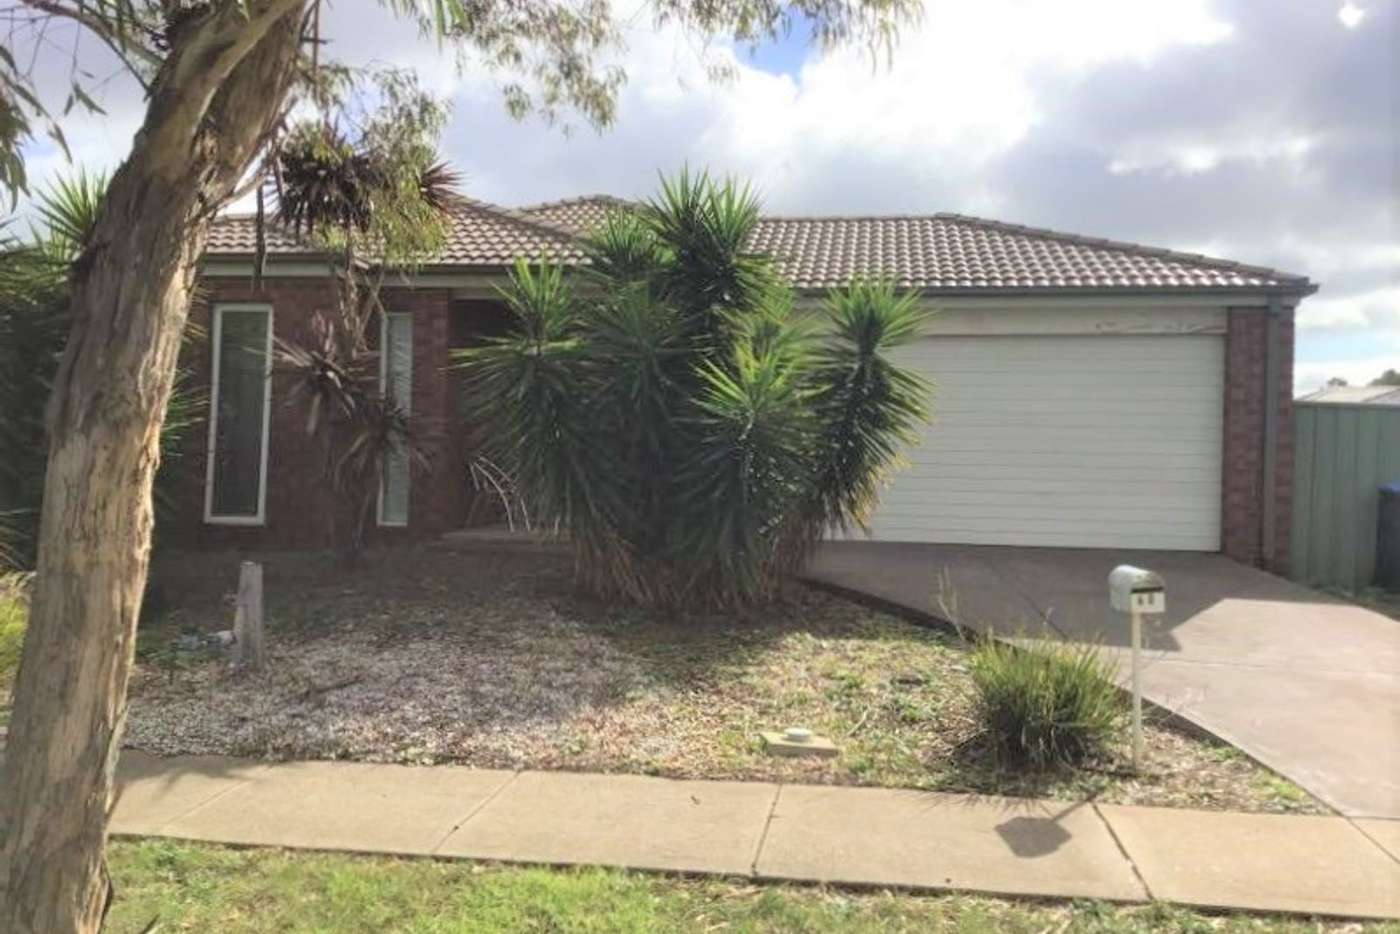 Main view of Homely house listing, 60 Ribblesdale Avenue, Wyndham Vale VIC 3024